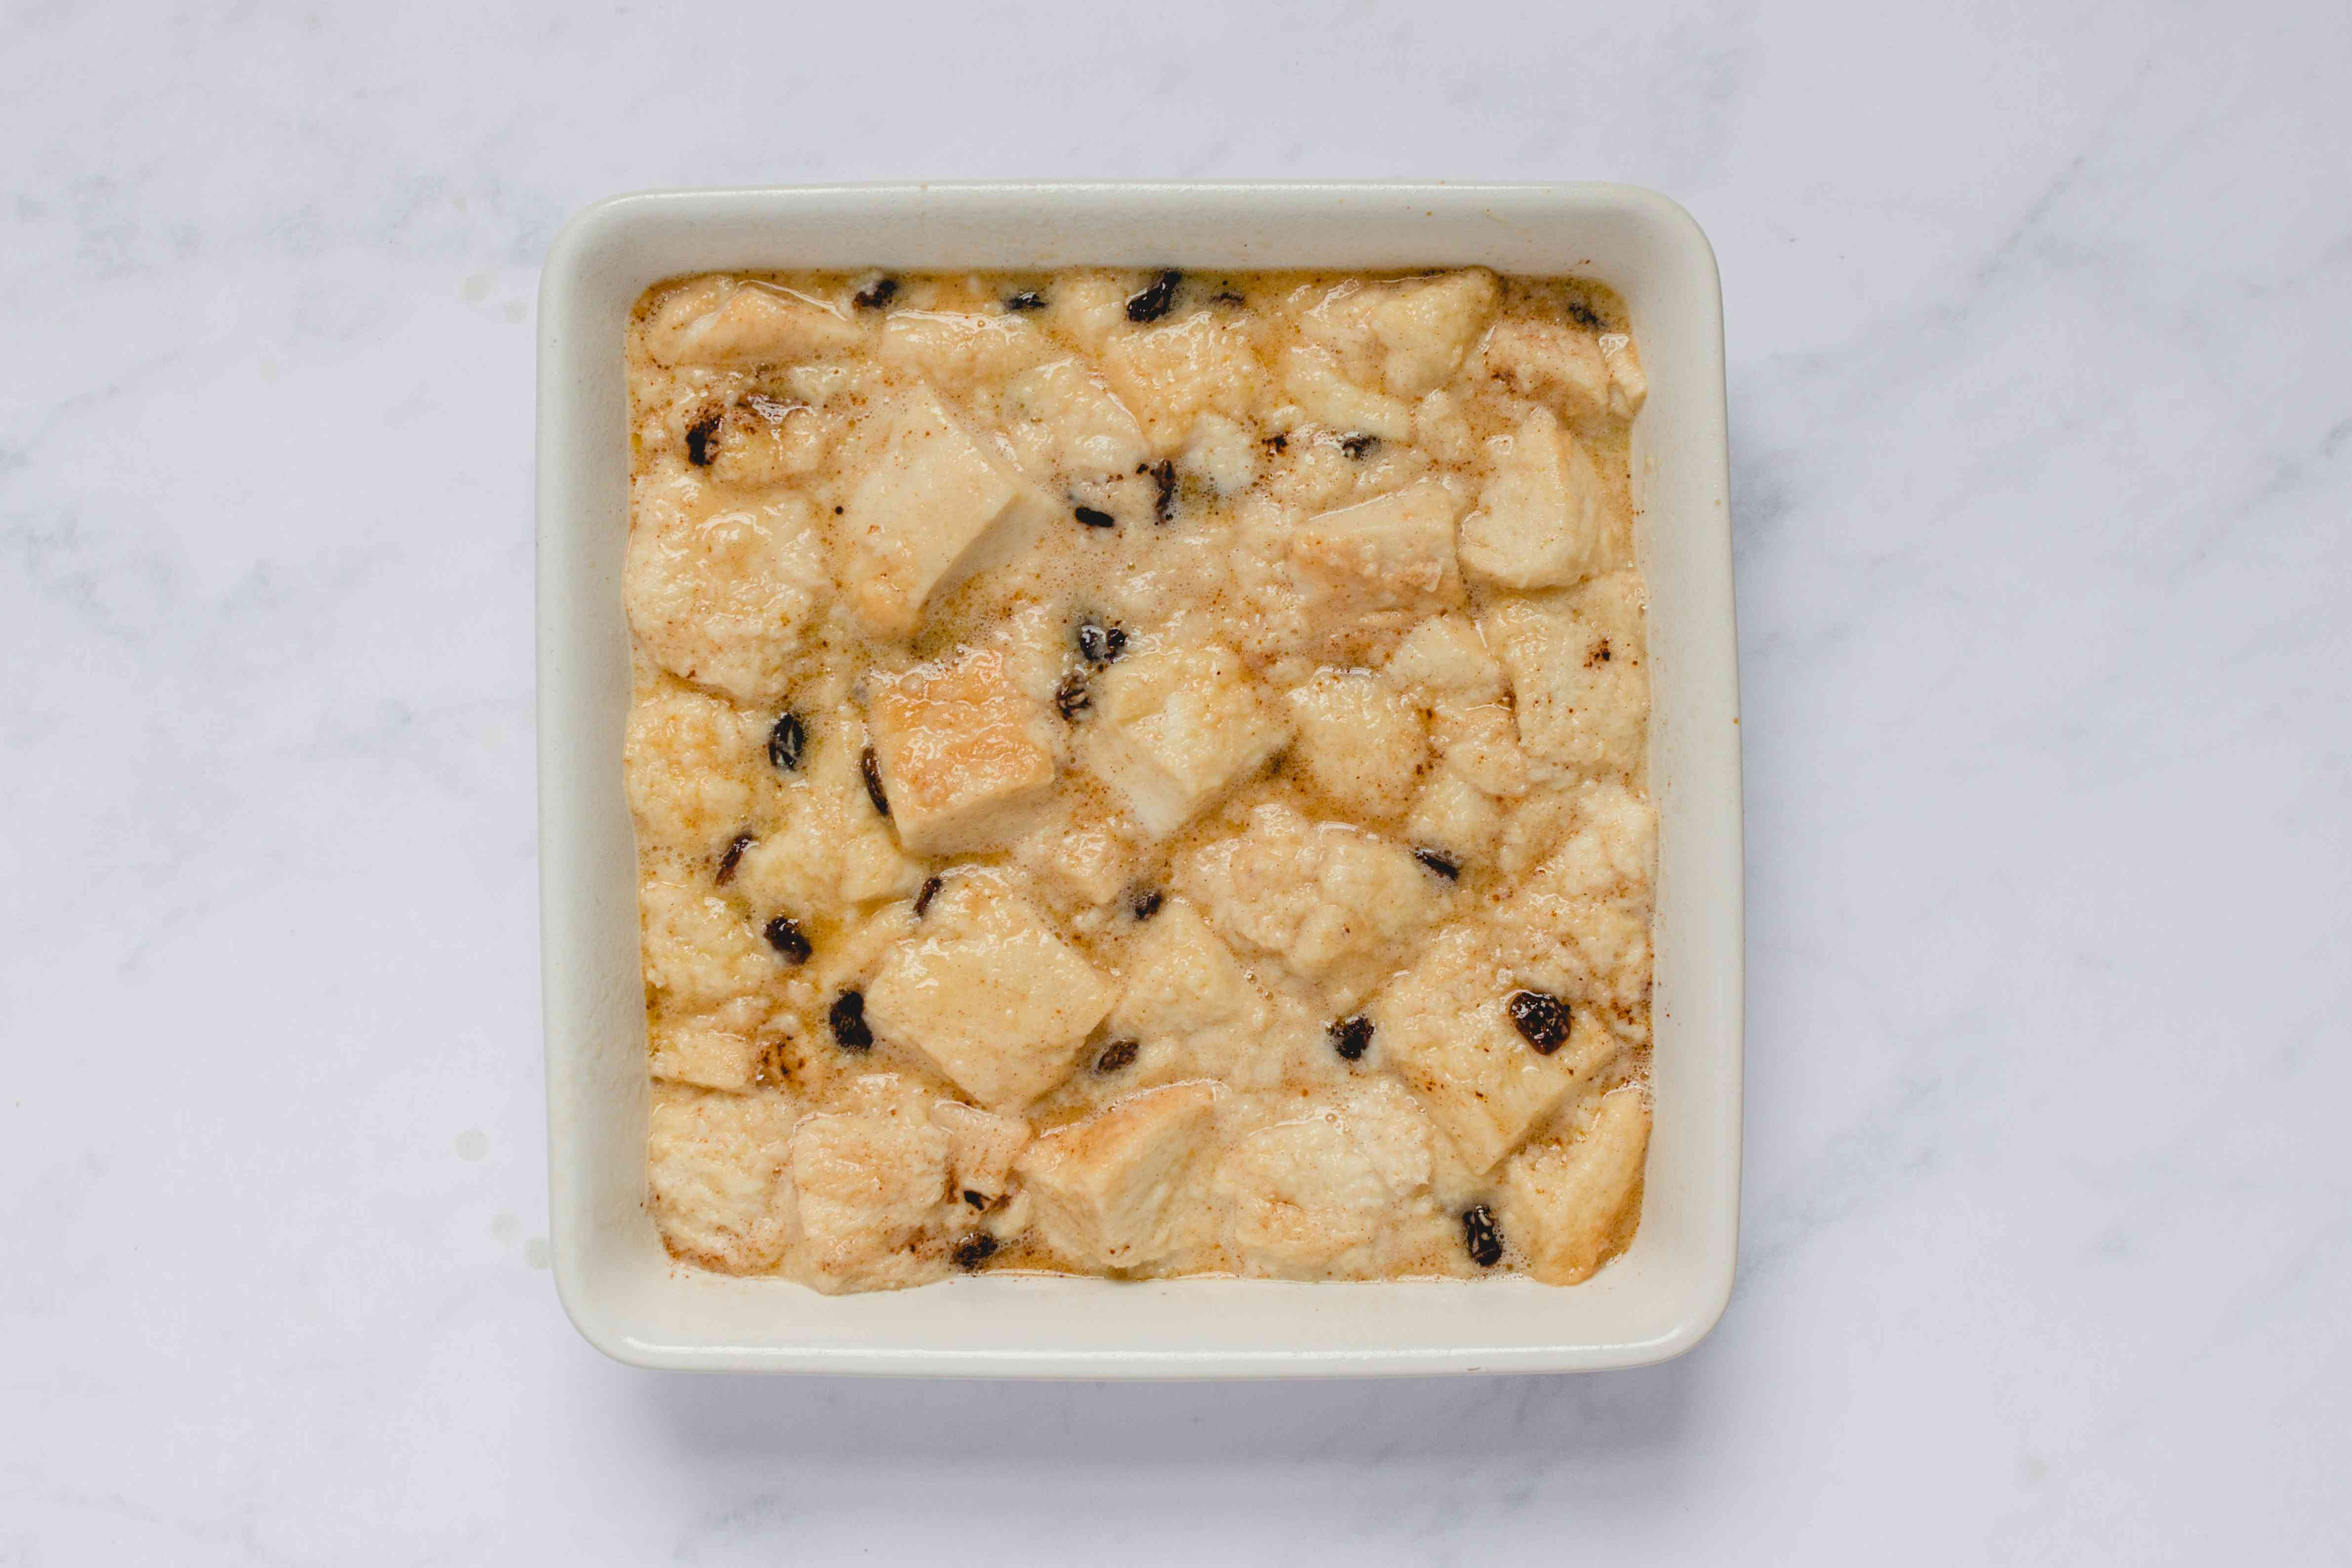 Pour the bread mix into the greased baking pan